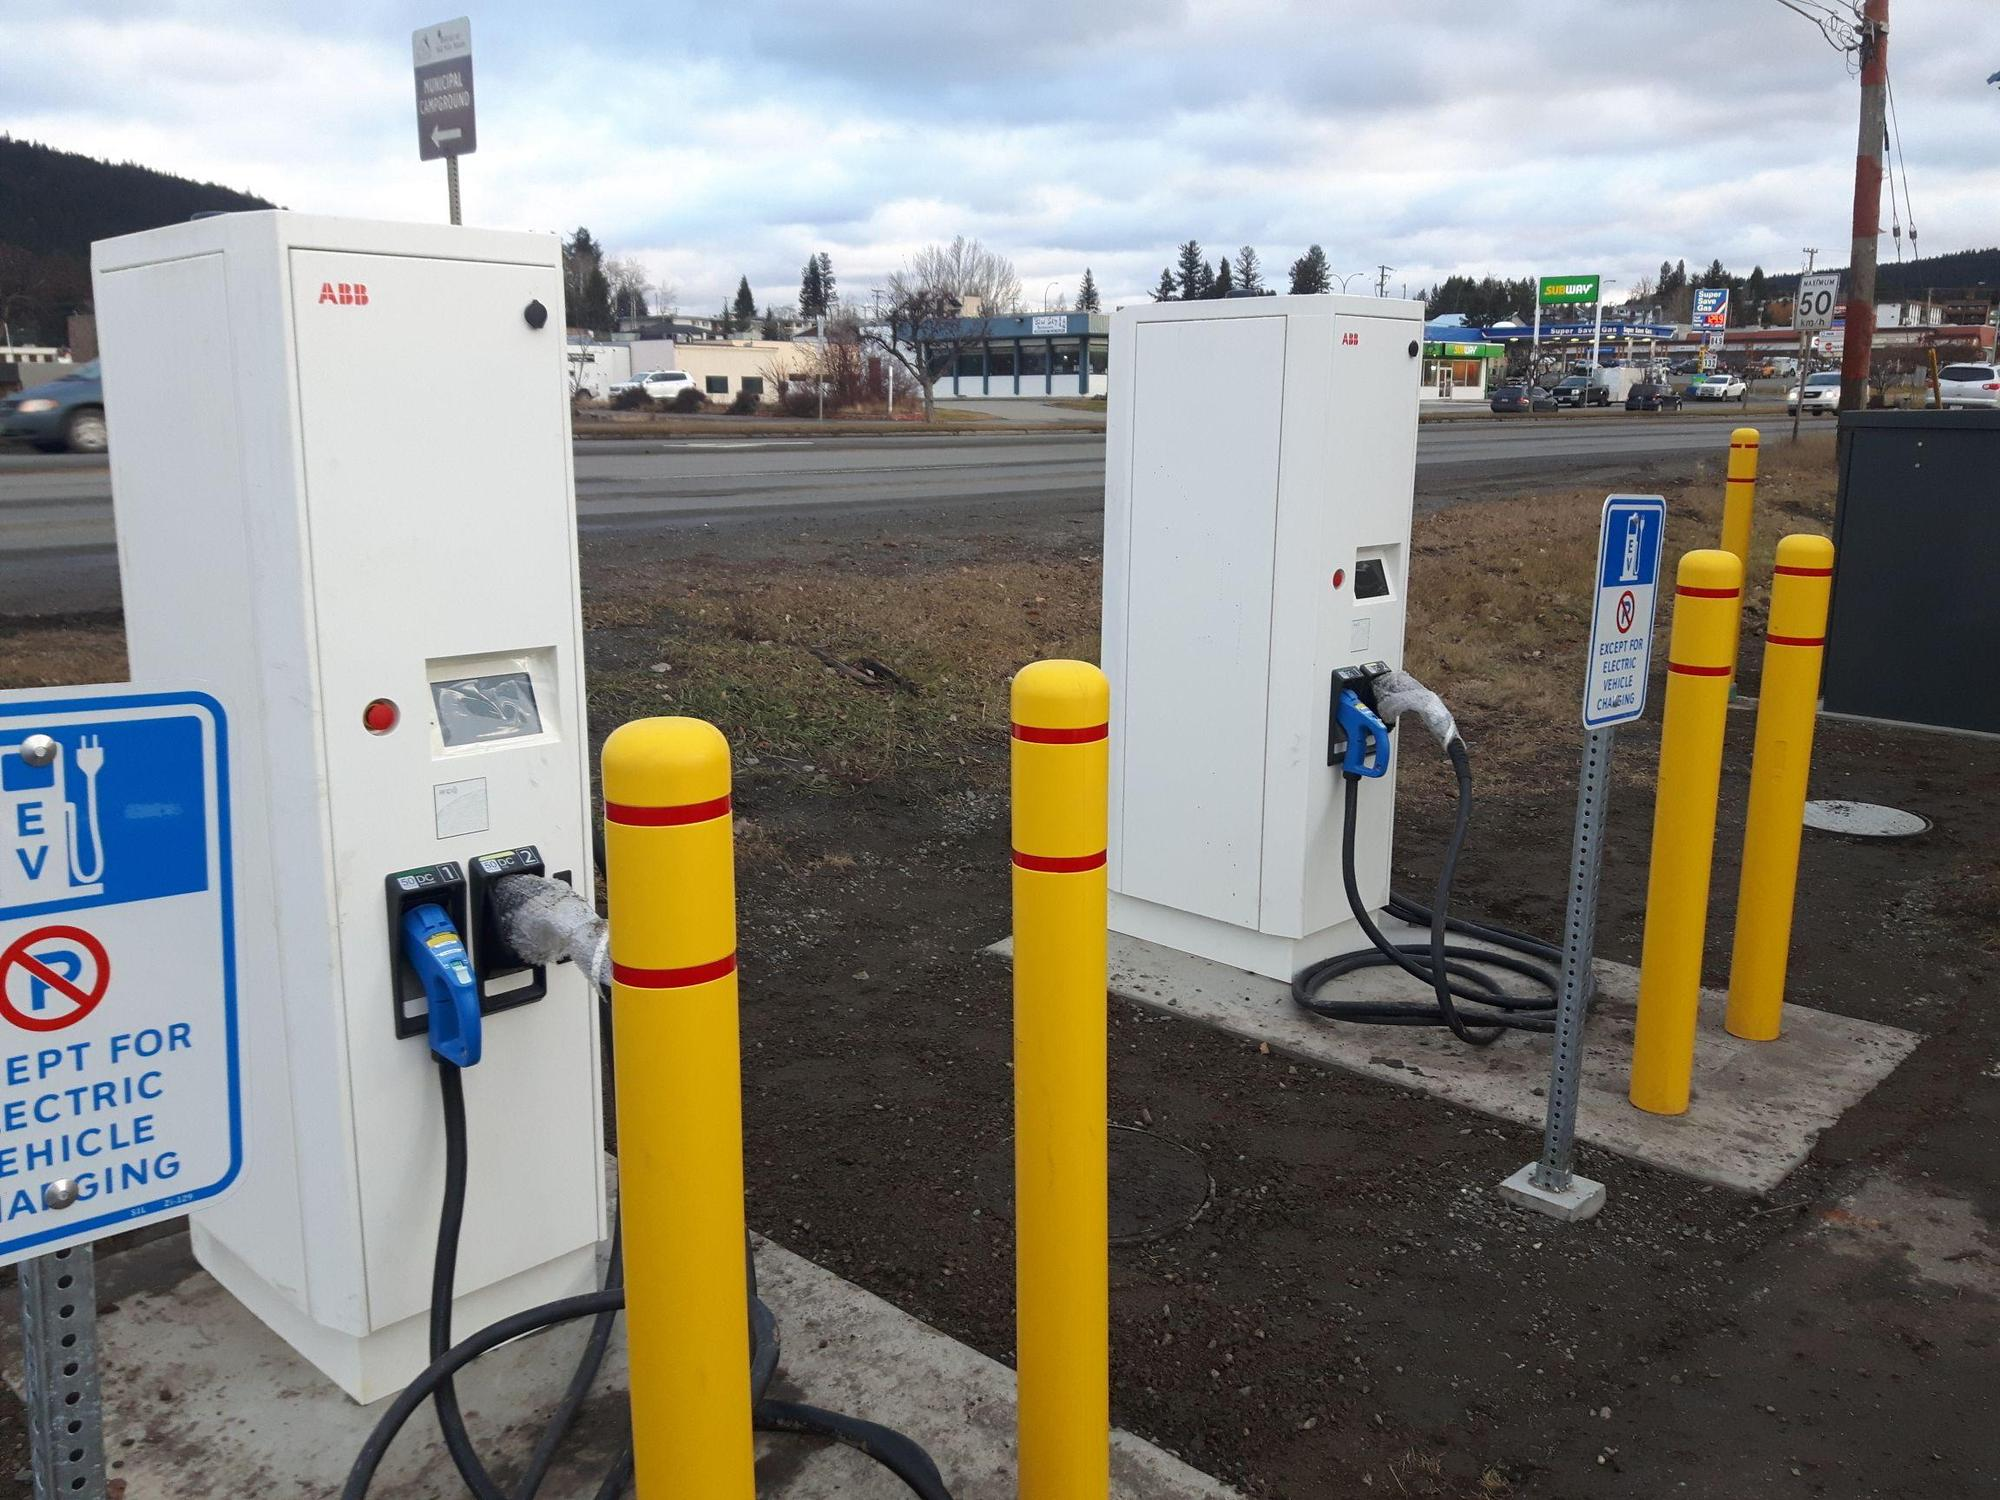 100 Mile House EV chargers 2